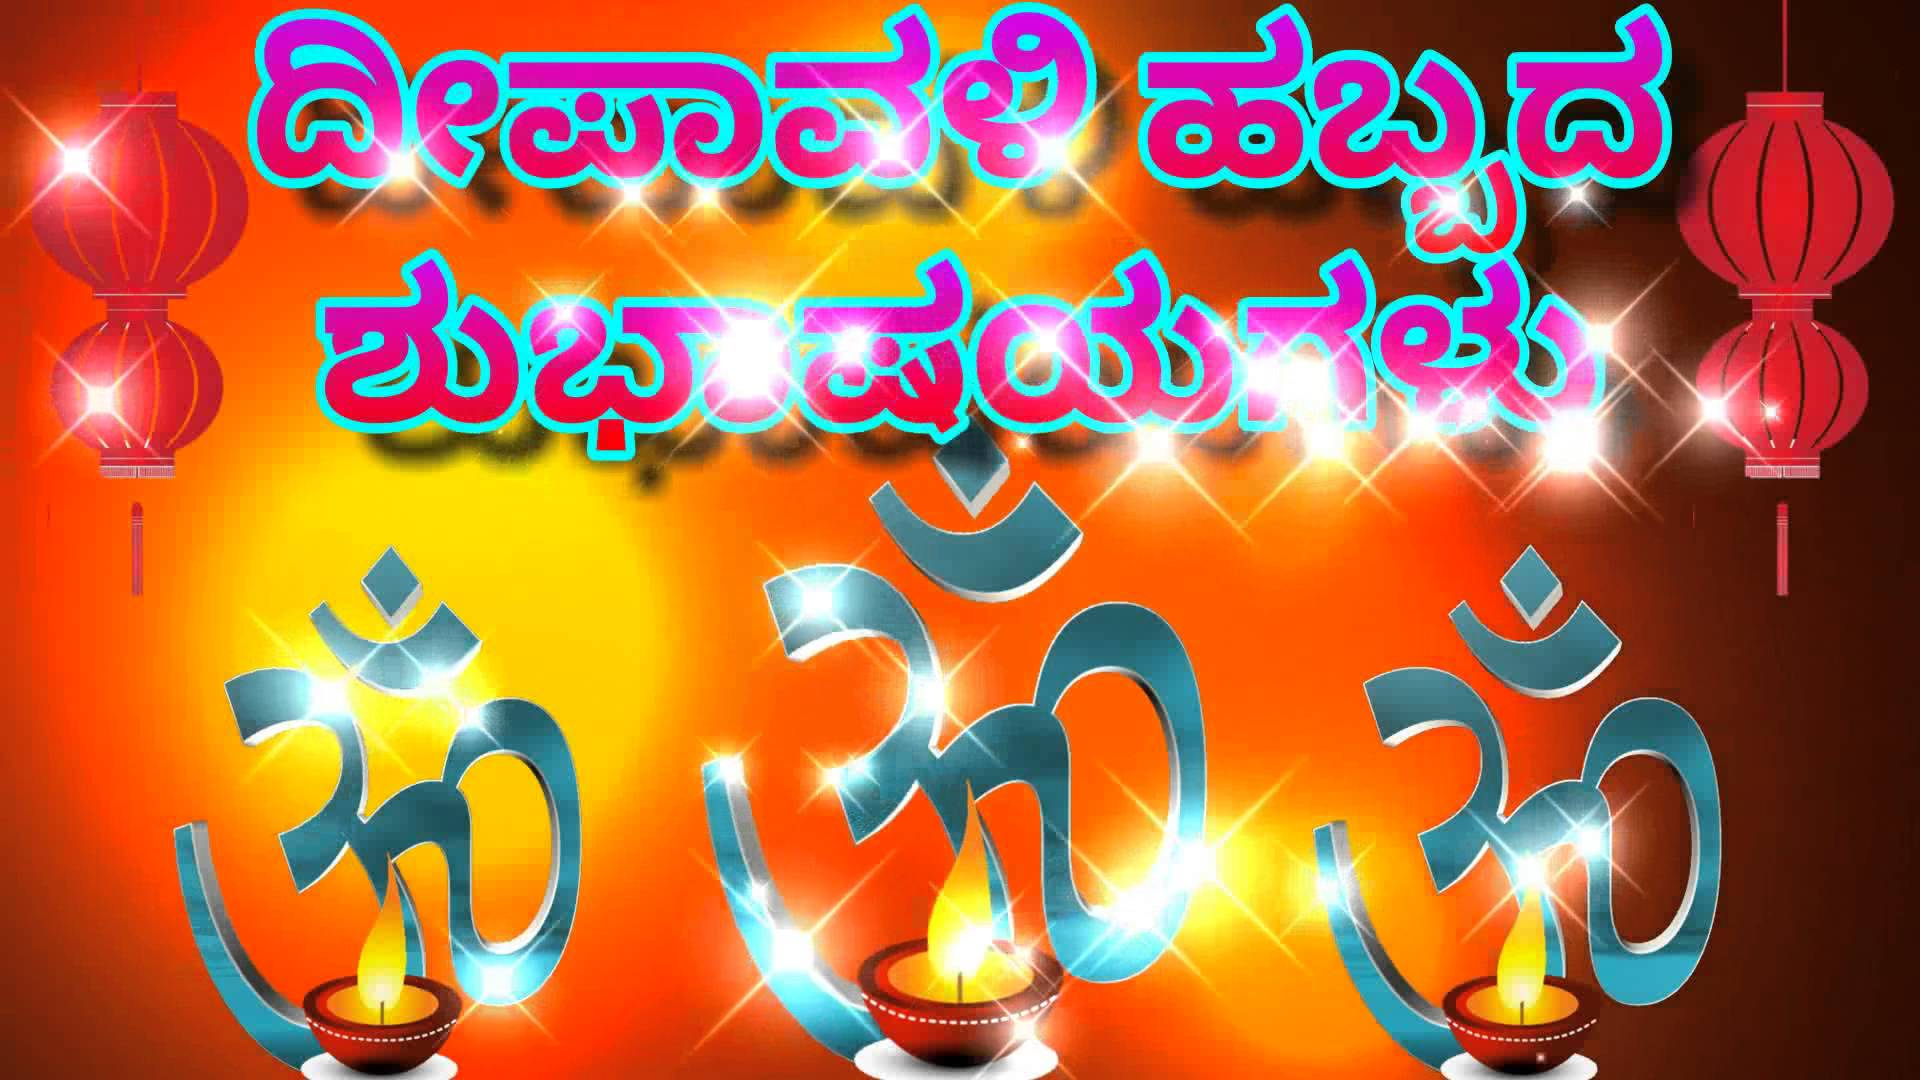 Deepavali Wishes Images in Kannada